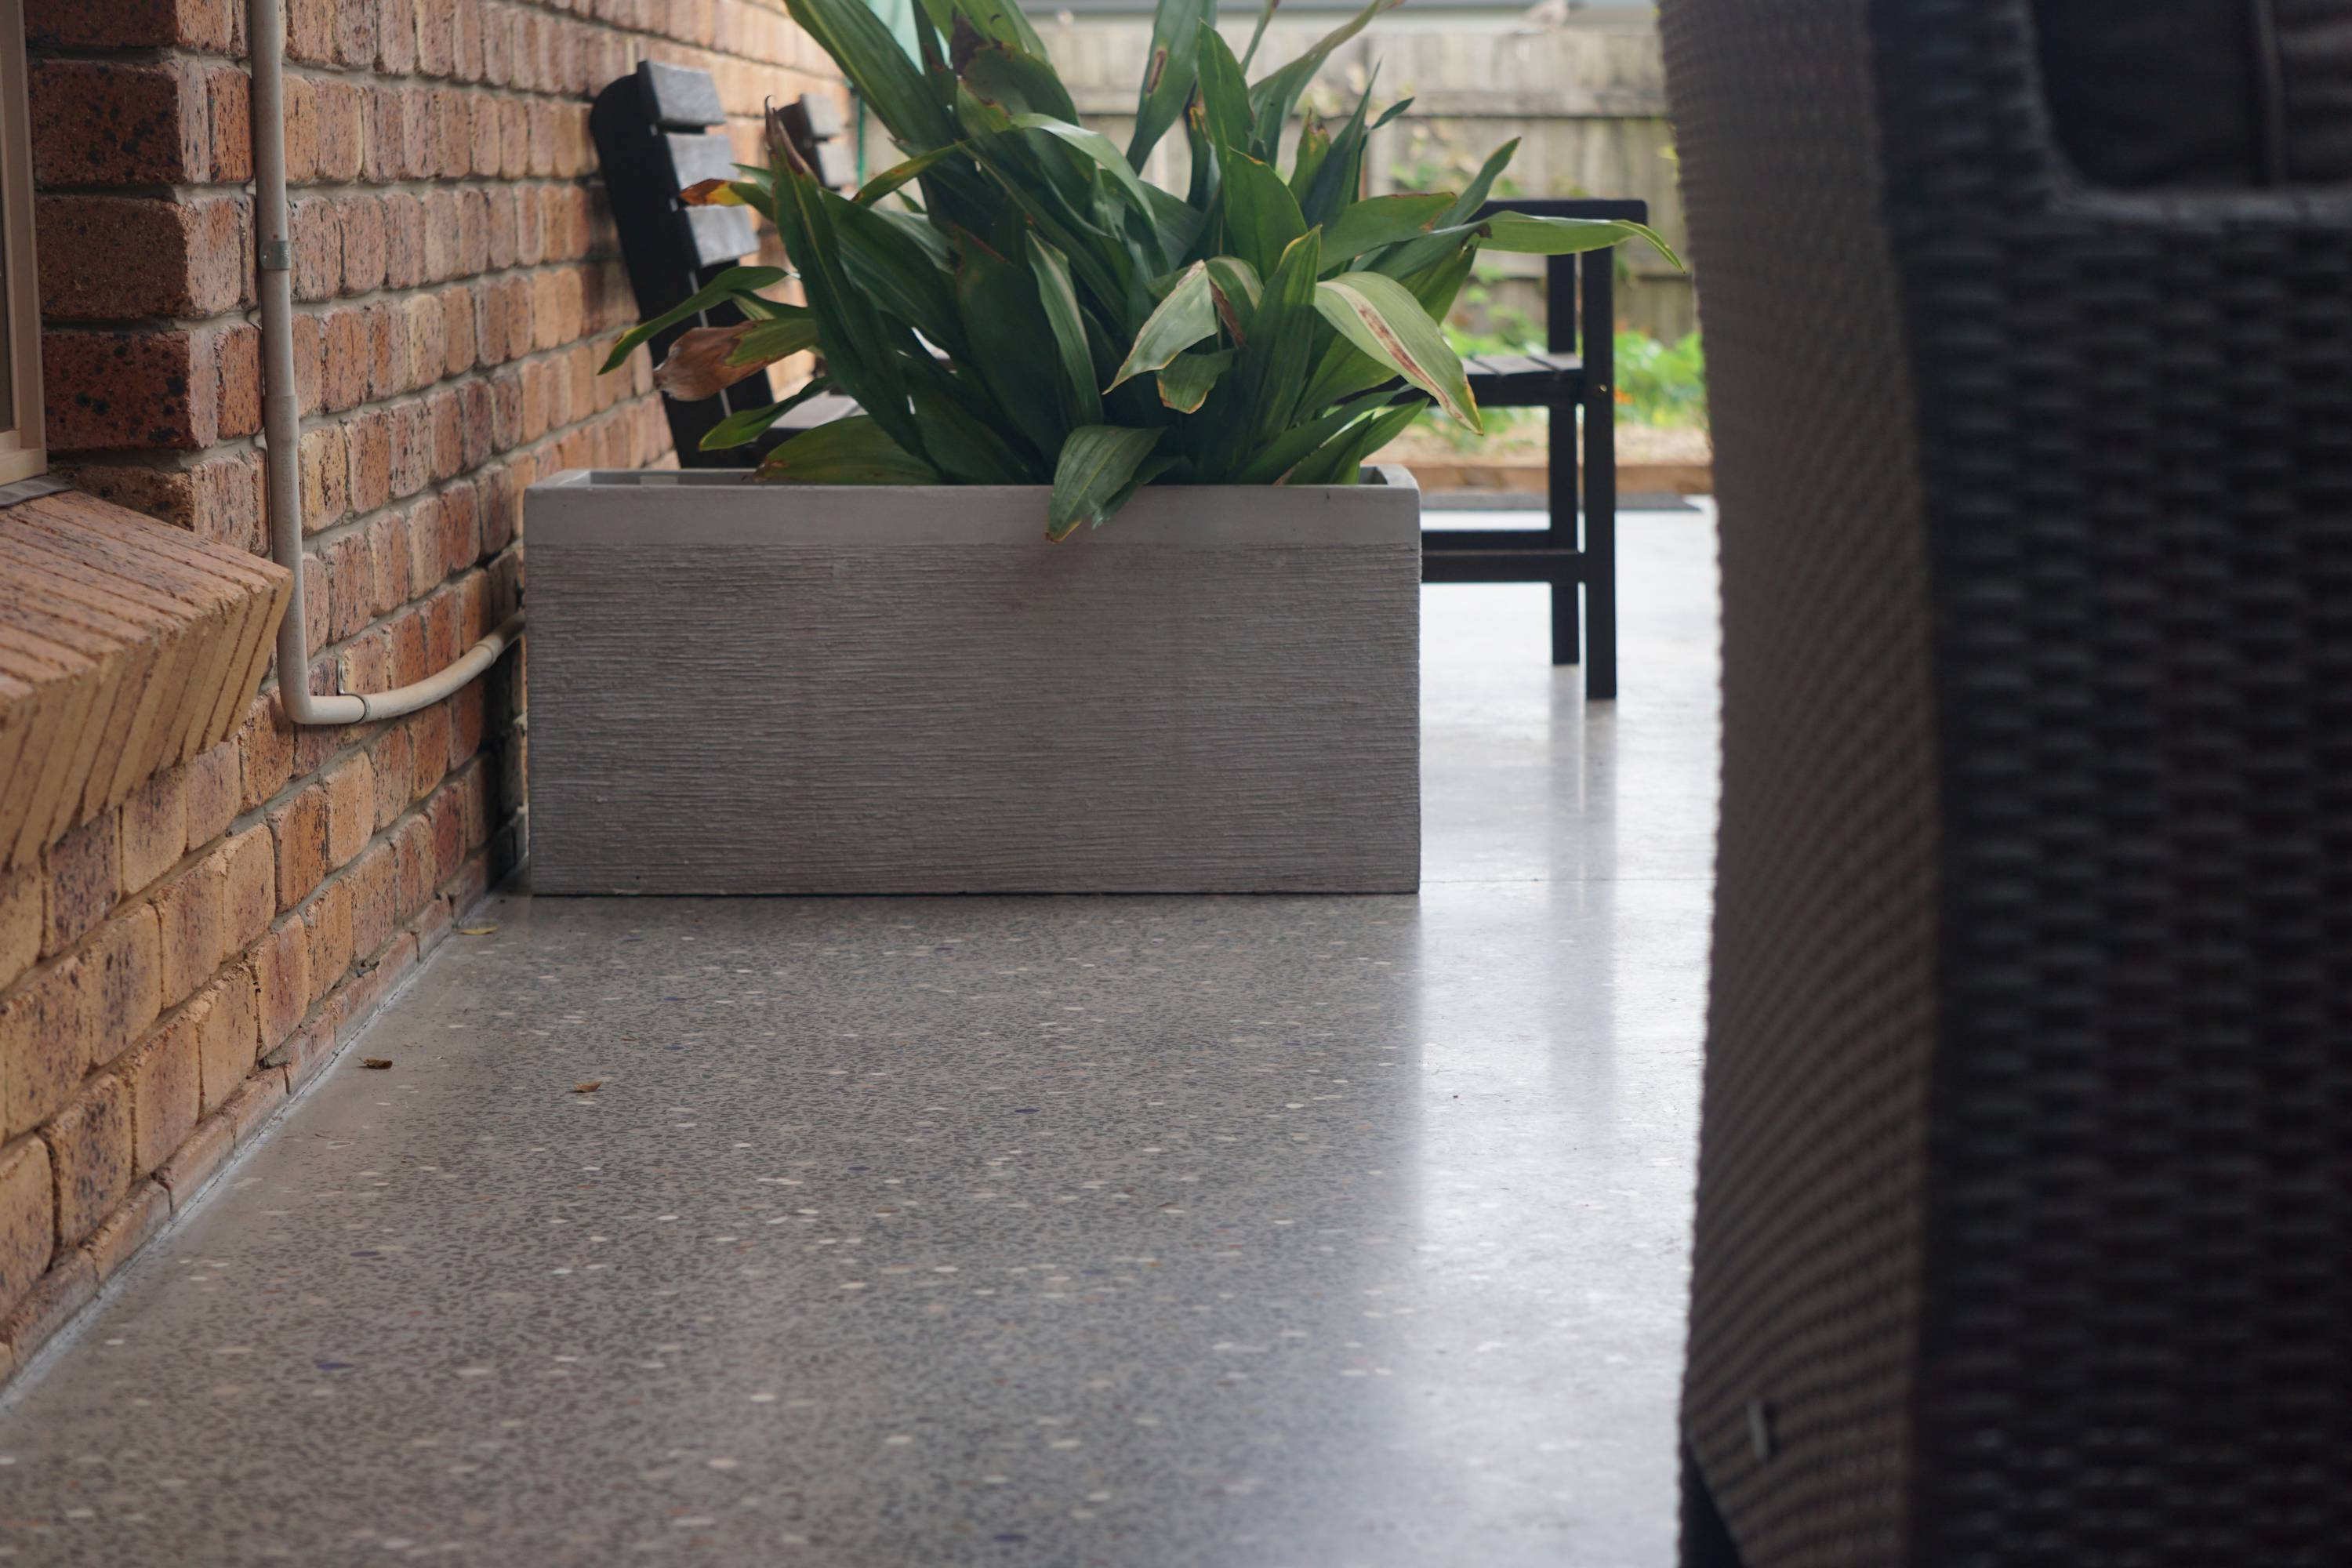 polished concrete floor in outdoor setting